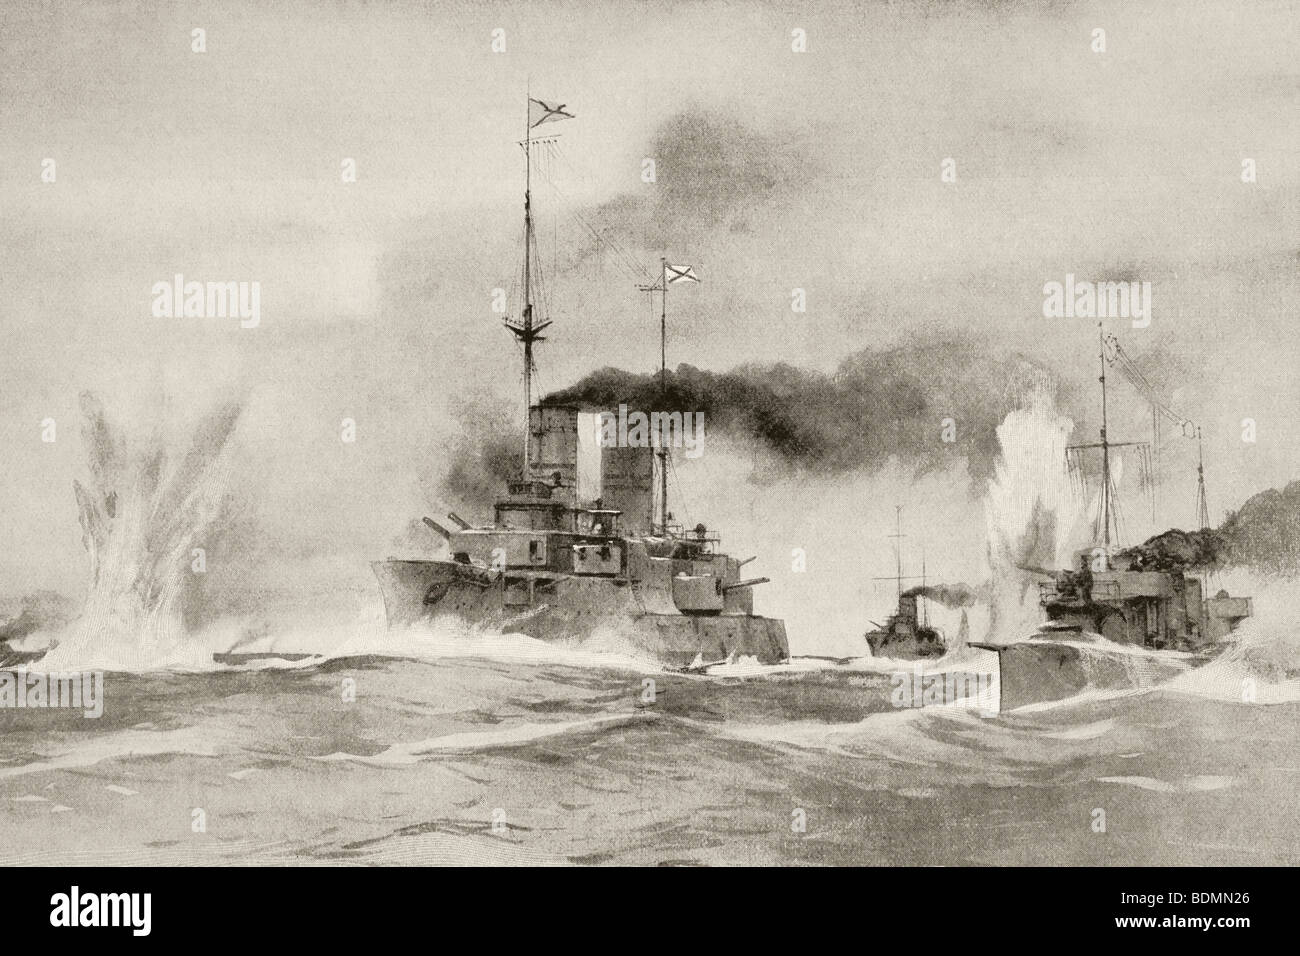 A sea battle underway during the First World War. - Stock Image